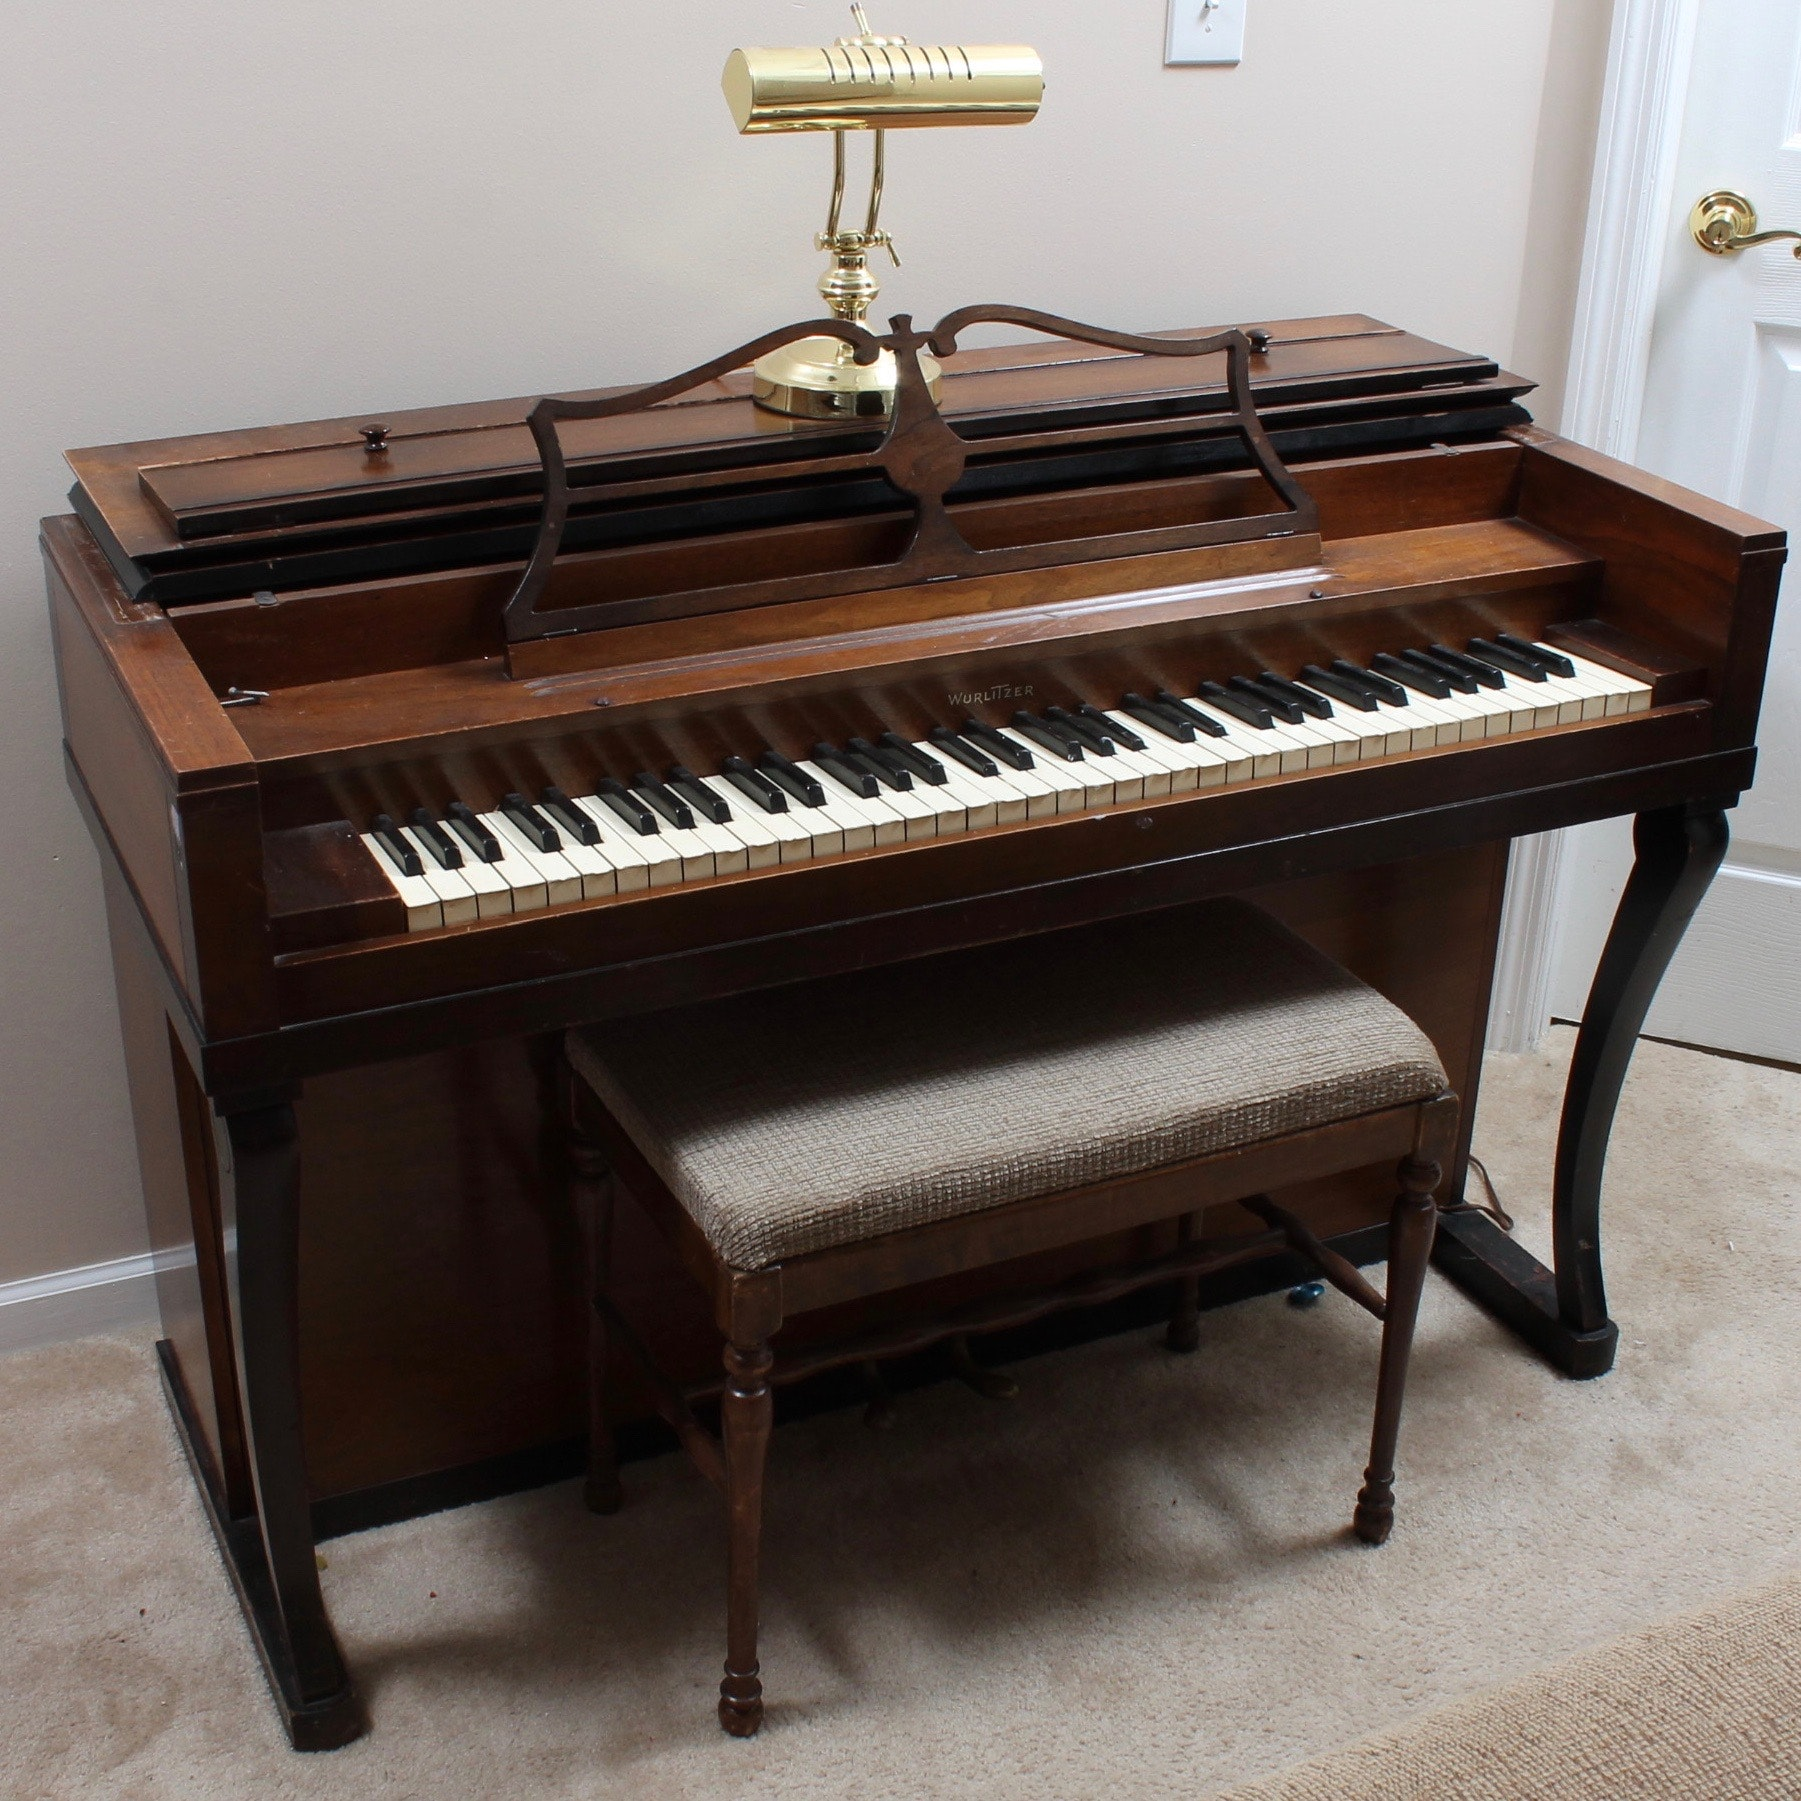 Vintage Wurlitzer Upright Piano